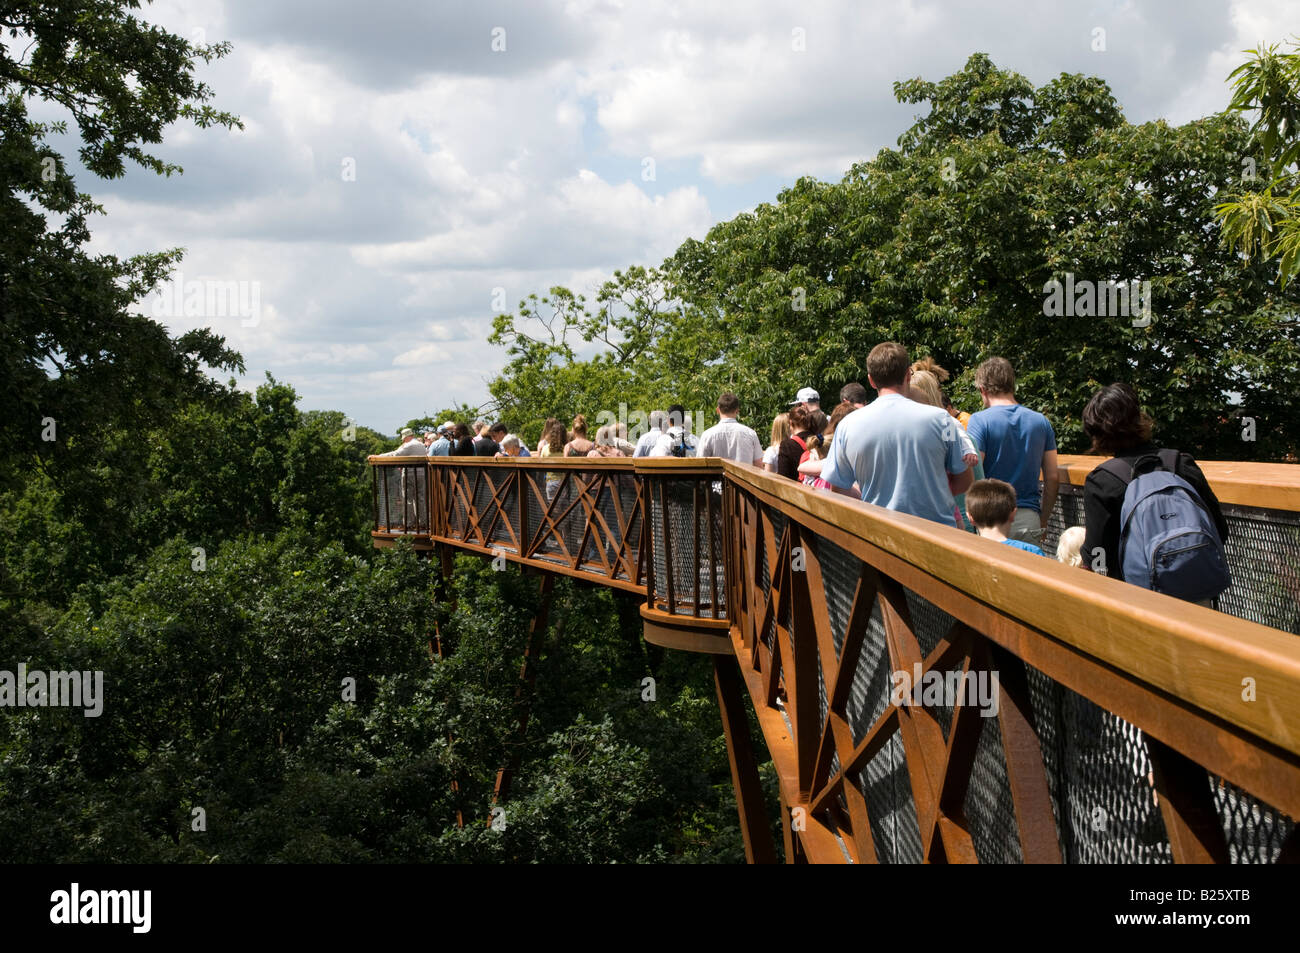 Xstrata Treetop Walkway à Kew Gardens London England UK Photo Stock